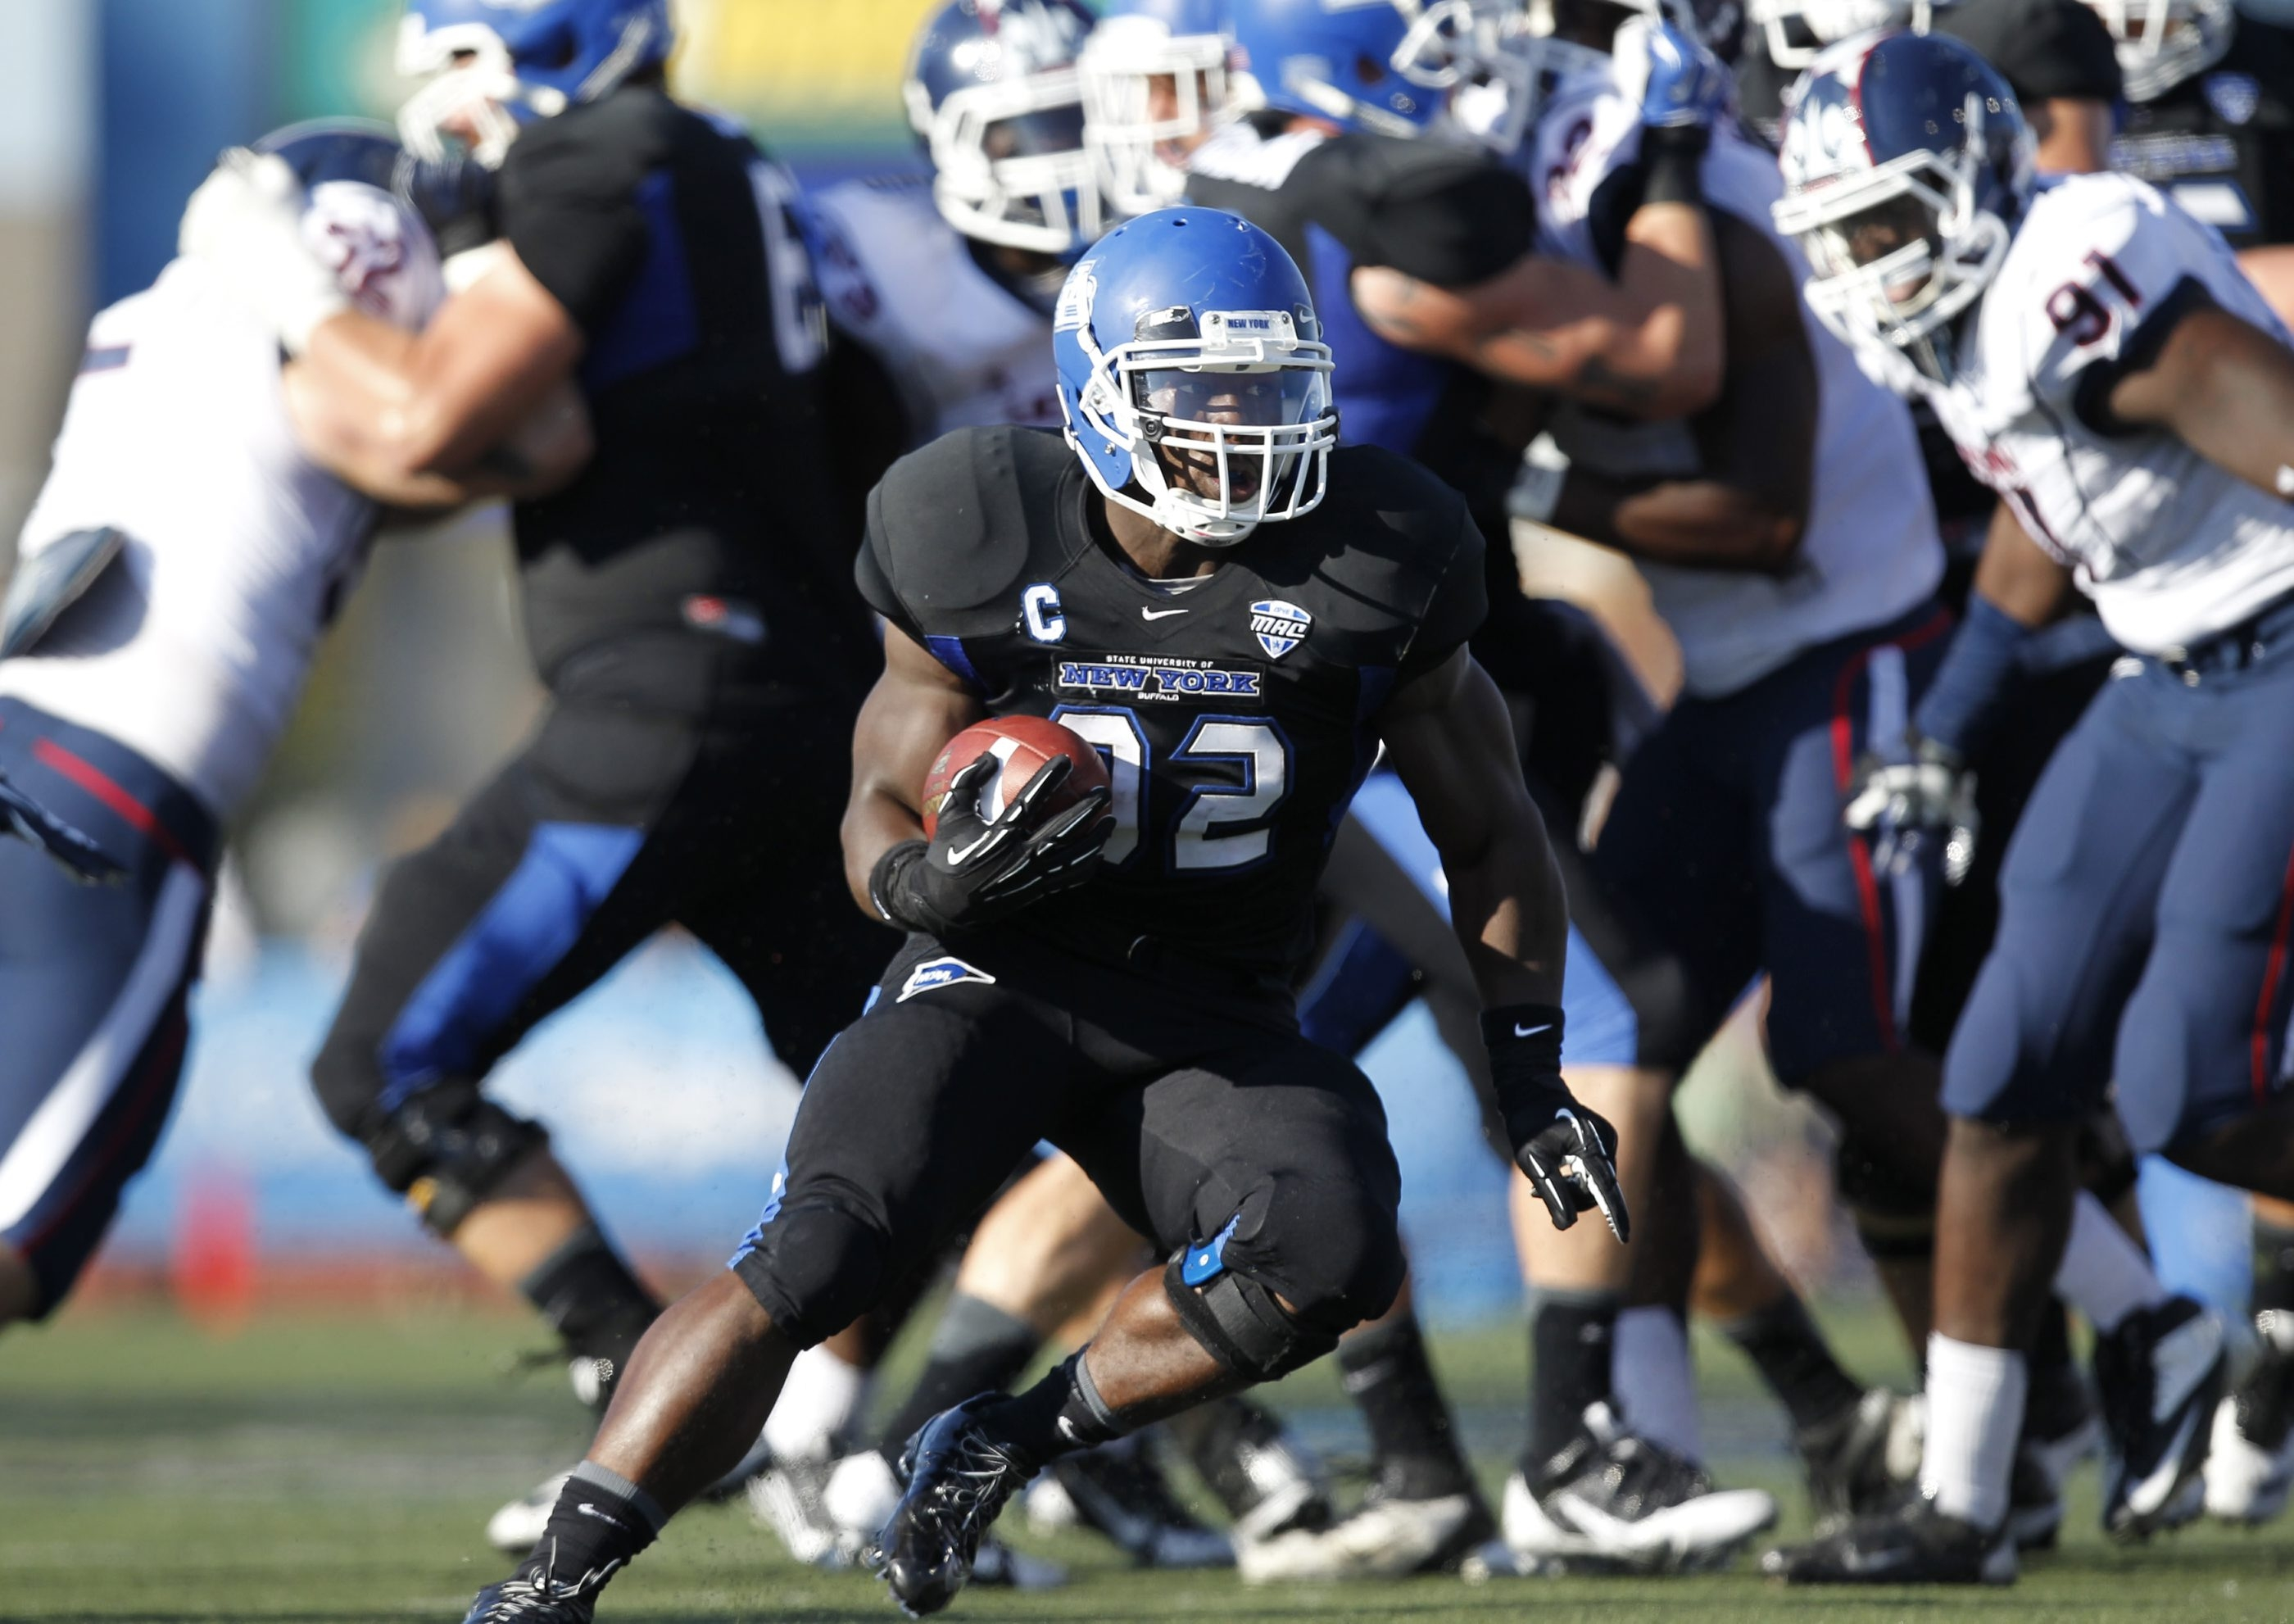 Running back Branden Oliver is one of 21 seniors who will play in UB Stadium for the last time Tuesday.  University at Buffalo football player,Bo Oliver runs upfield during the second quarter,in action against Connecticut at UB Stadium,on Saturday, Sept. 28, 2013.(Harry Scull Jr./Buffalo News)